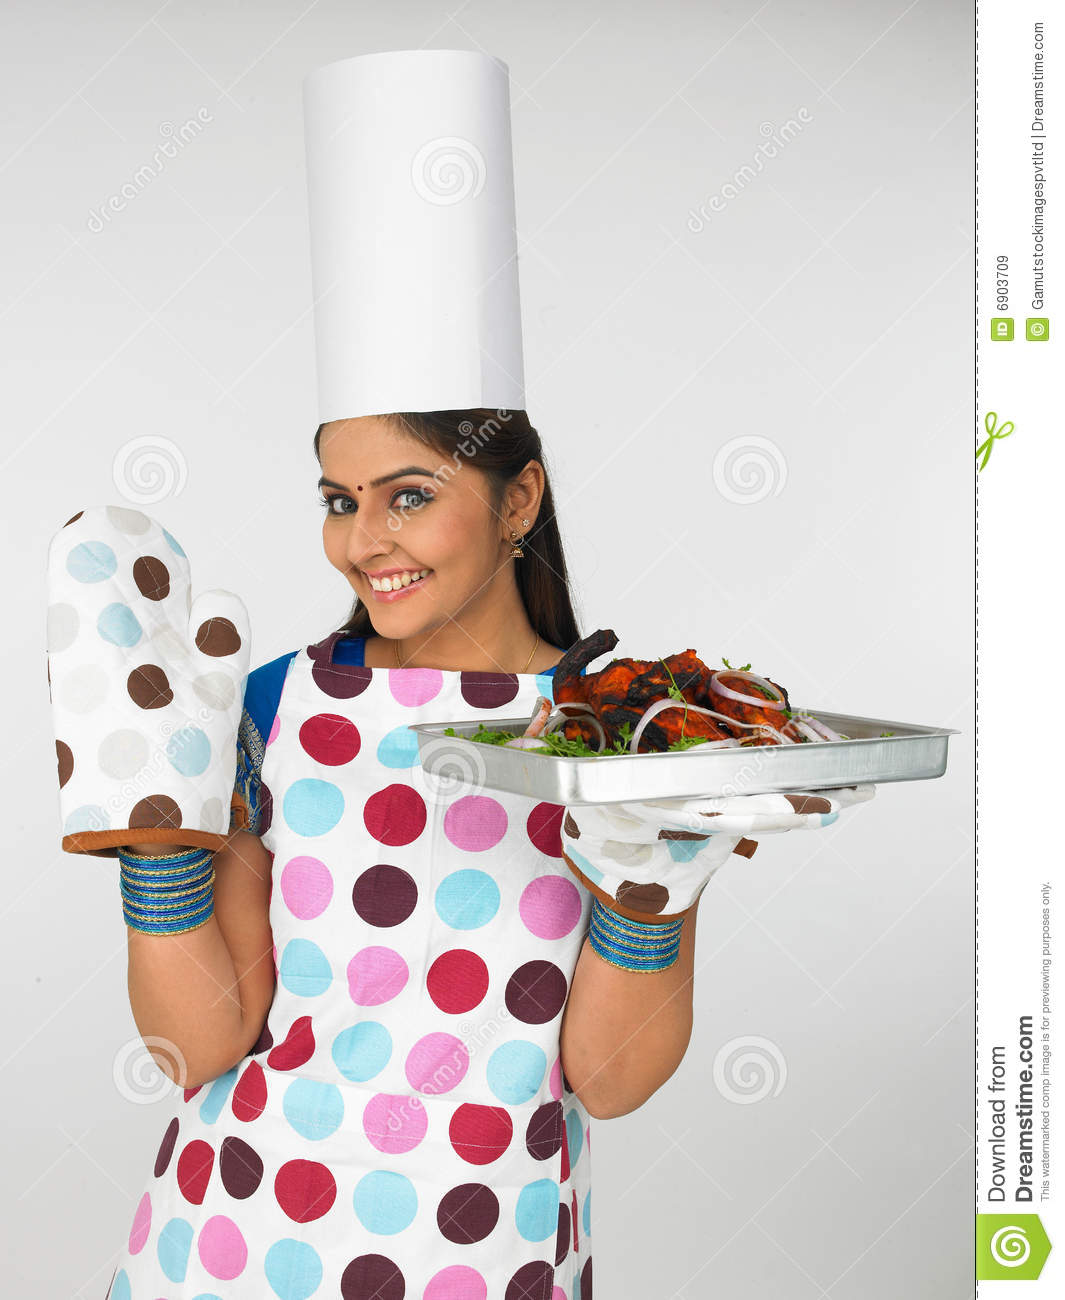 Indian lady chef clipart picture black and white Woman Chef With Baked Chicken Royalty Free Stock Images - Image ... picture black and white